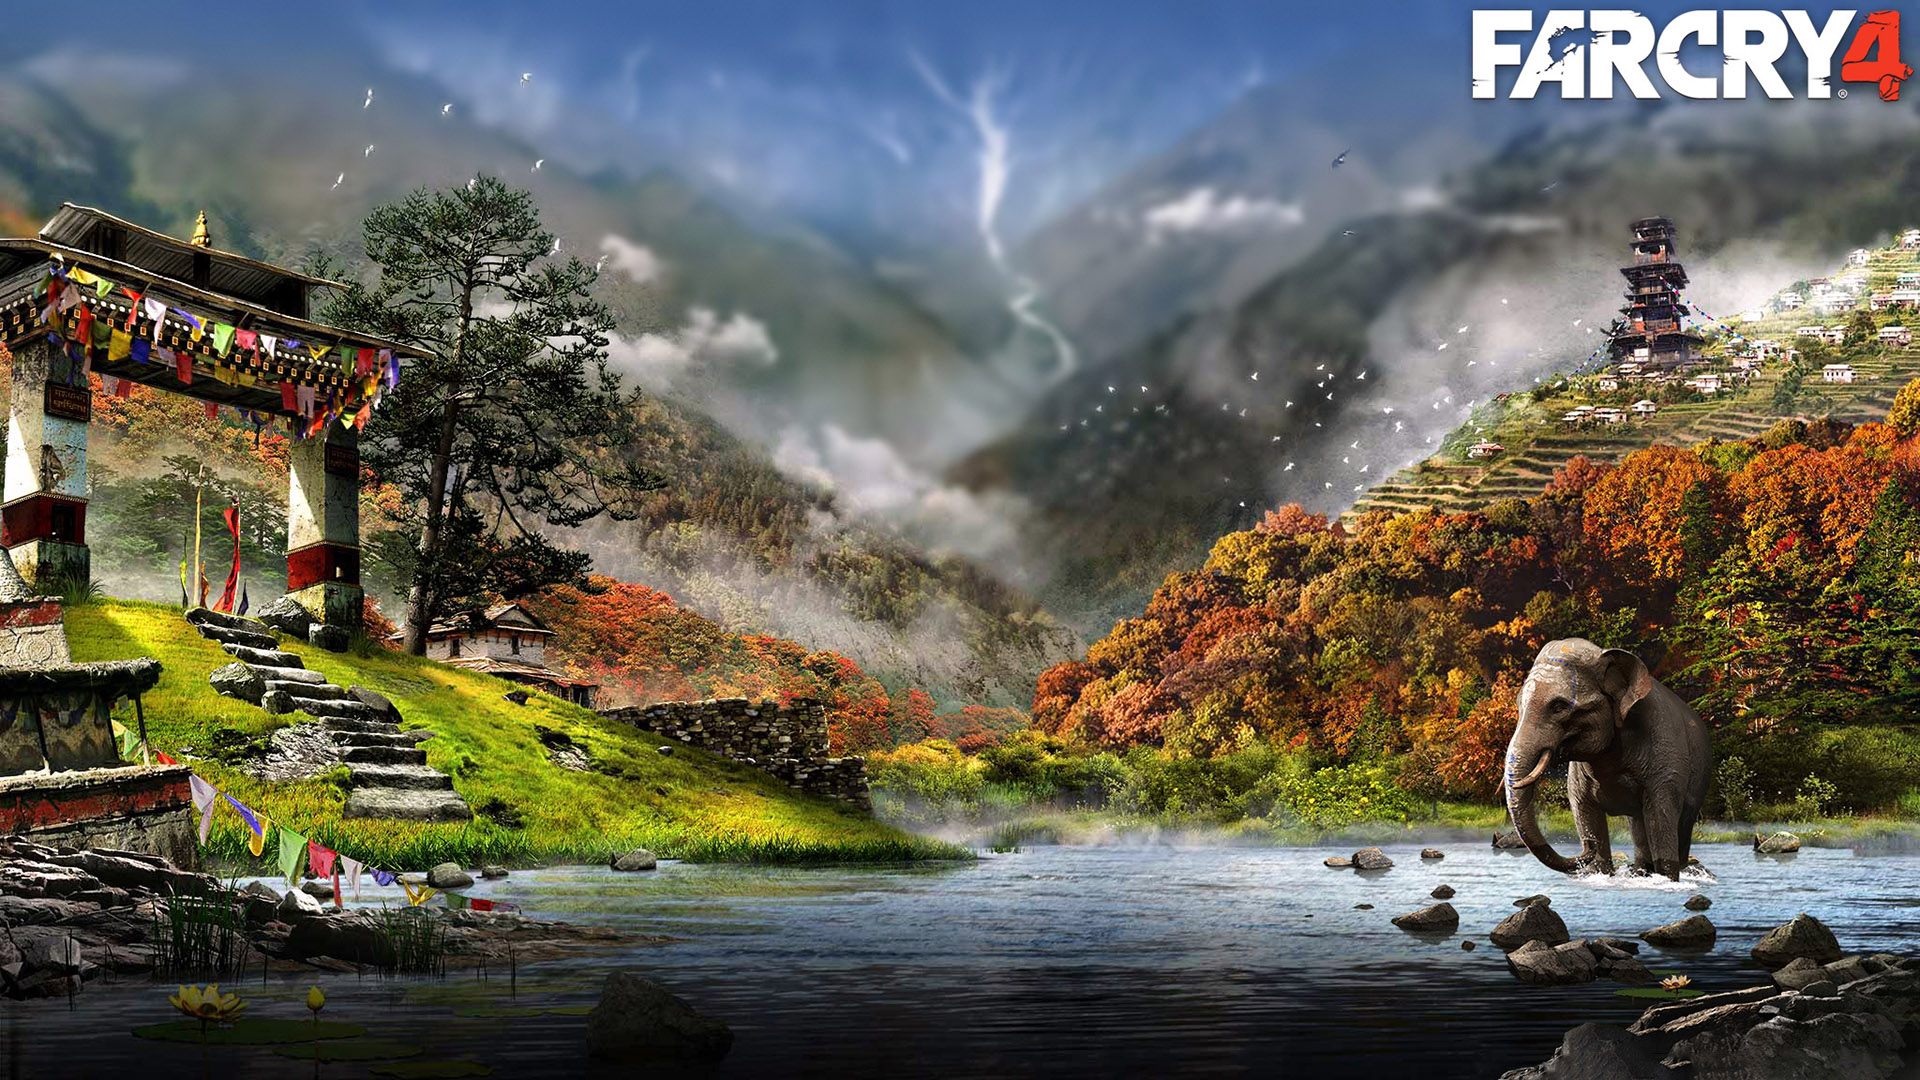 Far Cry 4 Wallpapers - Wallpaper Cave  Far Cry 4 Wallpaper Hd